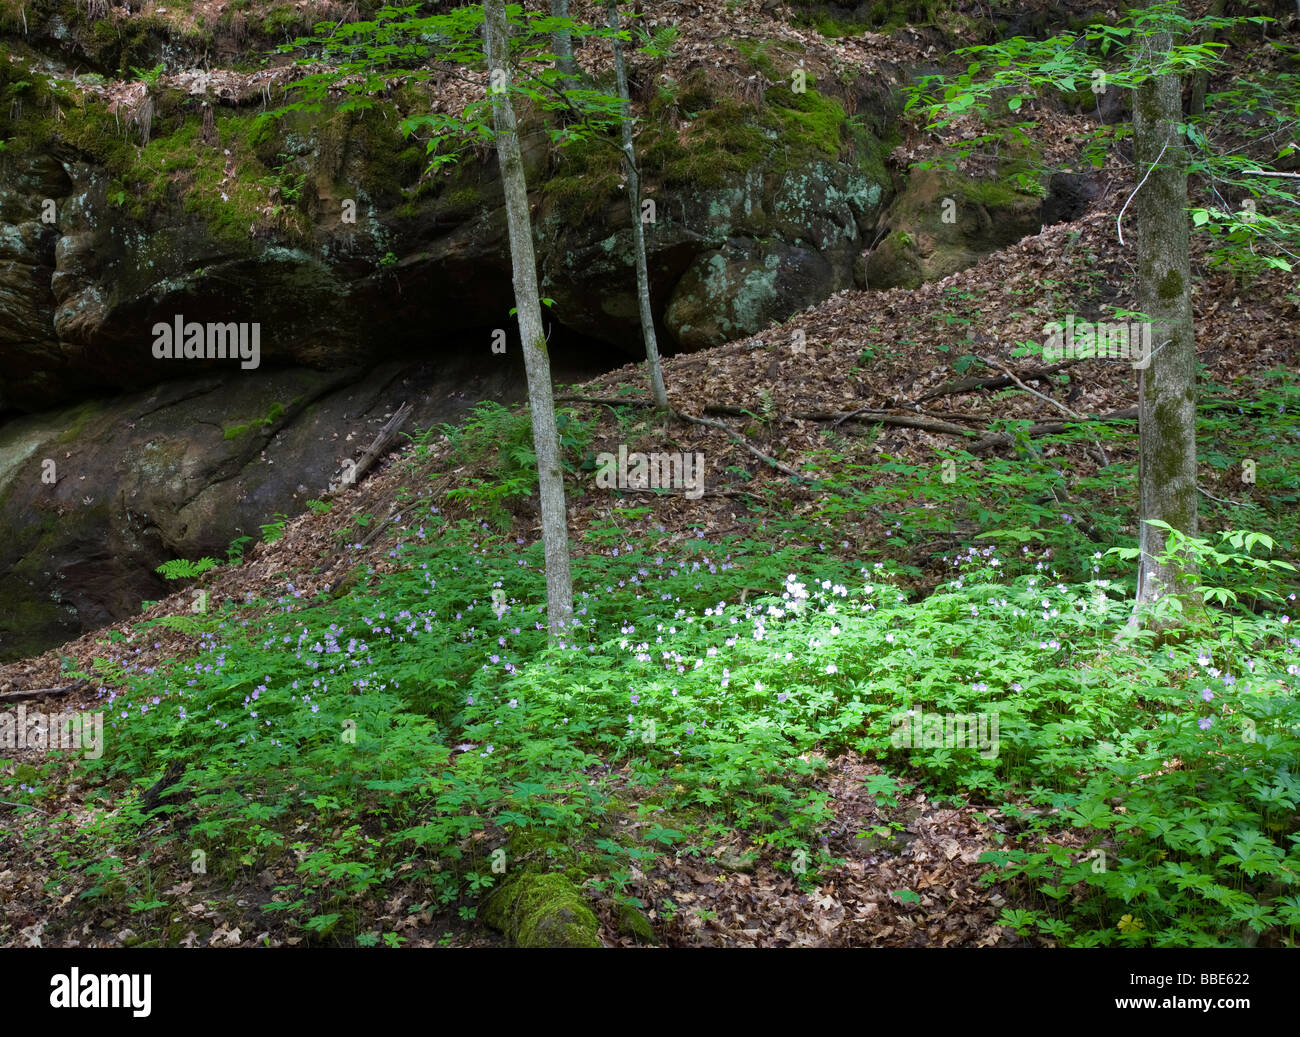 Lost Valley, Governor Dodge State Park, Wisconsin - Stock Image